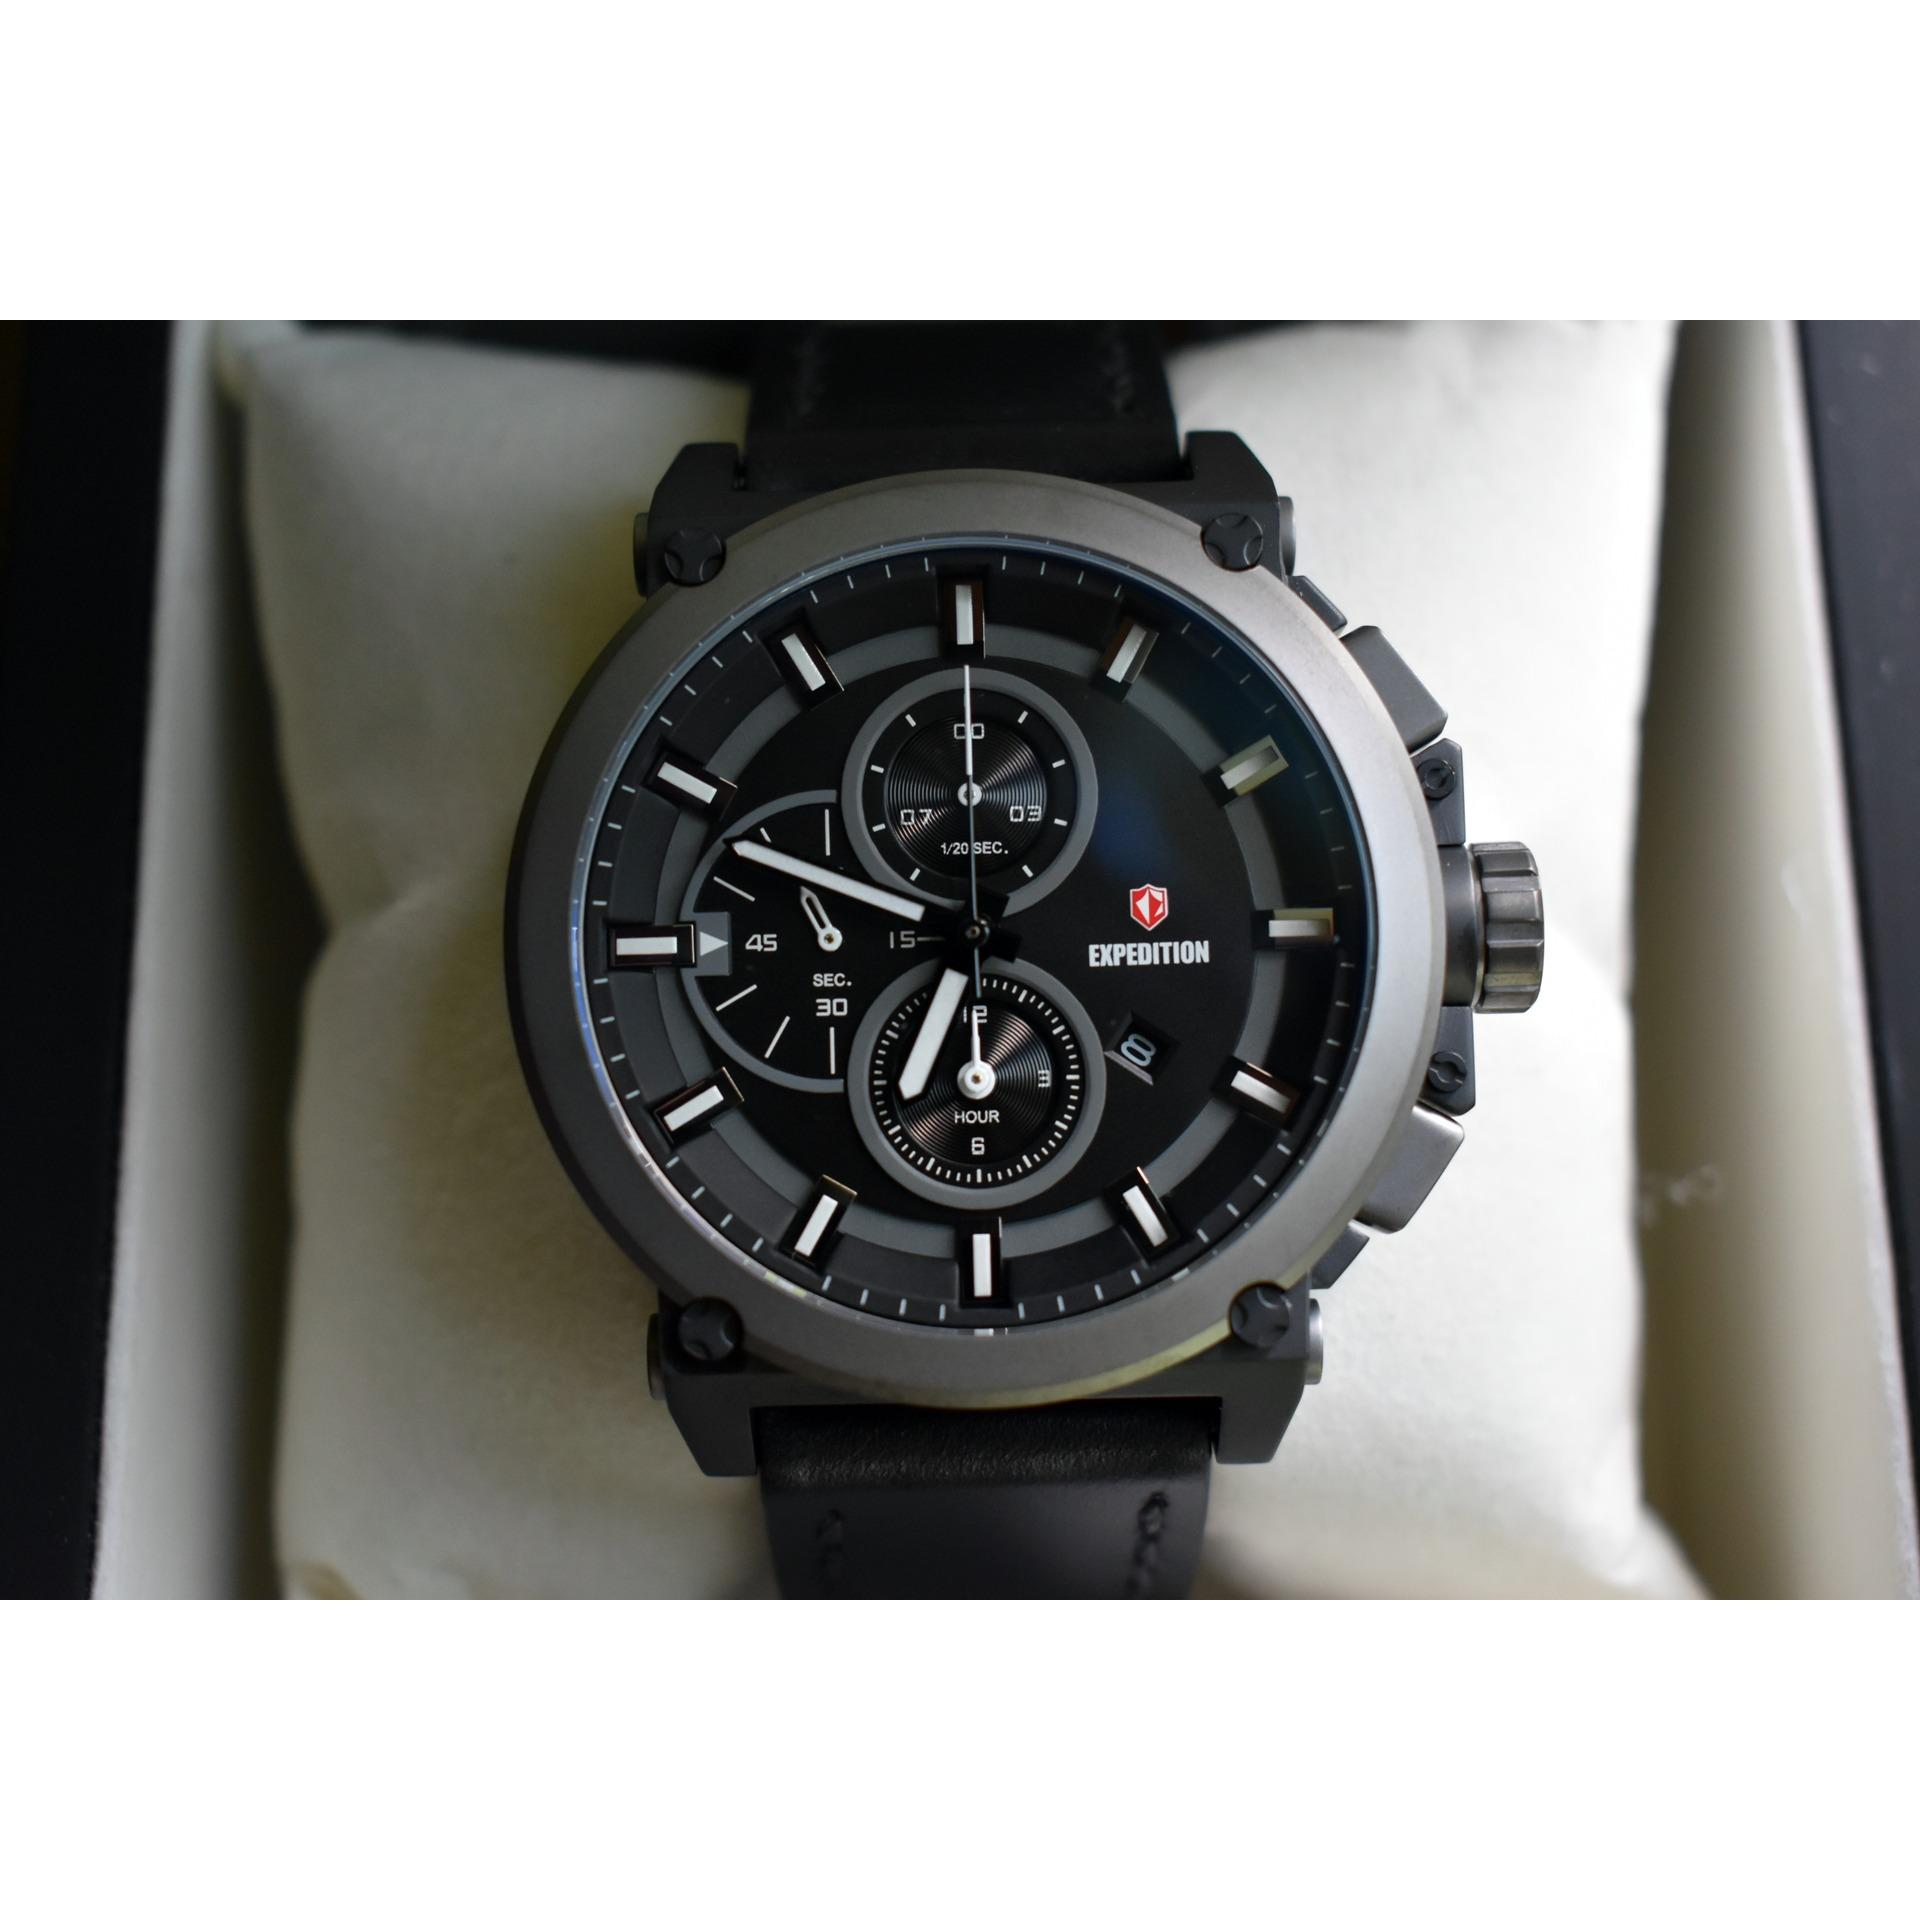 Jam Tangan Expedition Cowok Pria E 6612 M E6612 Full Black Original